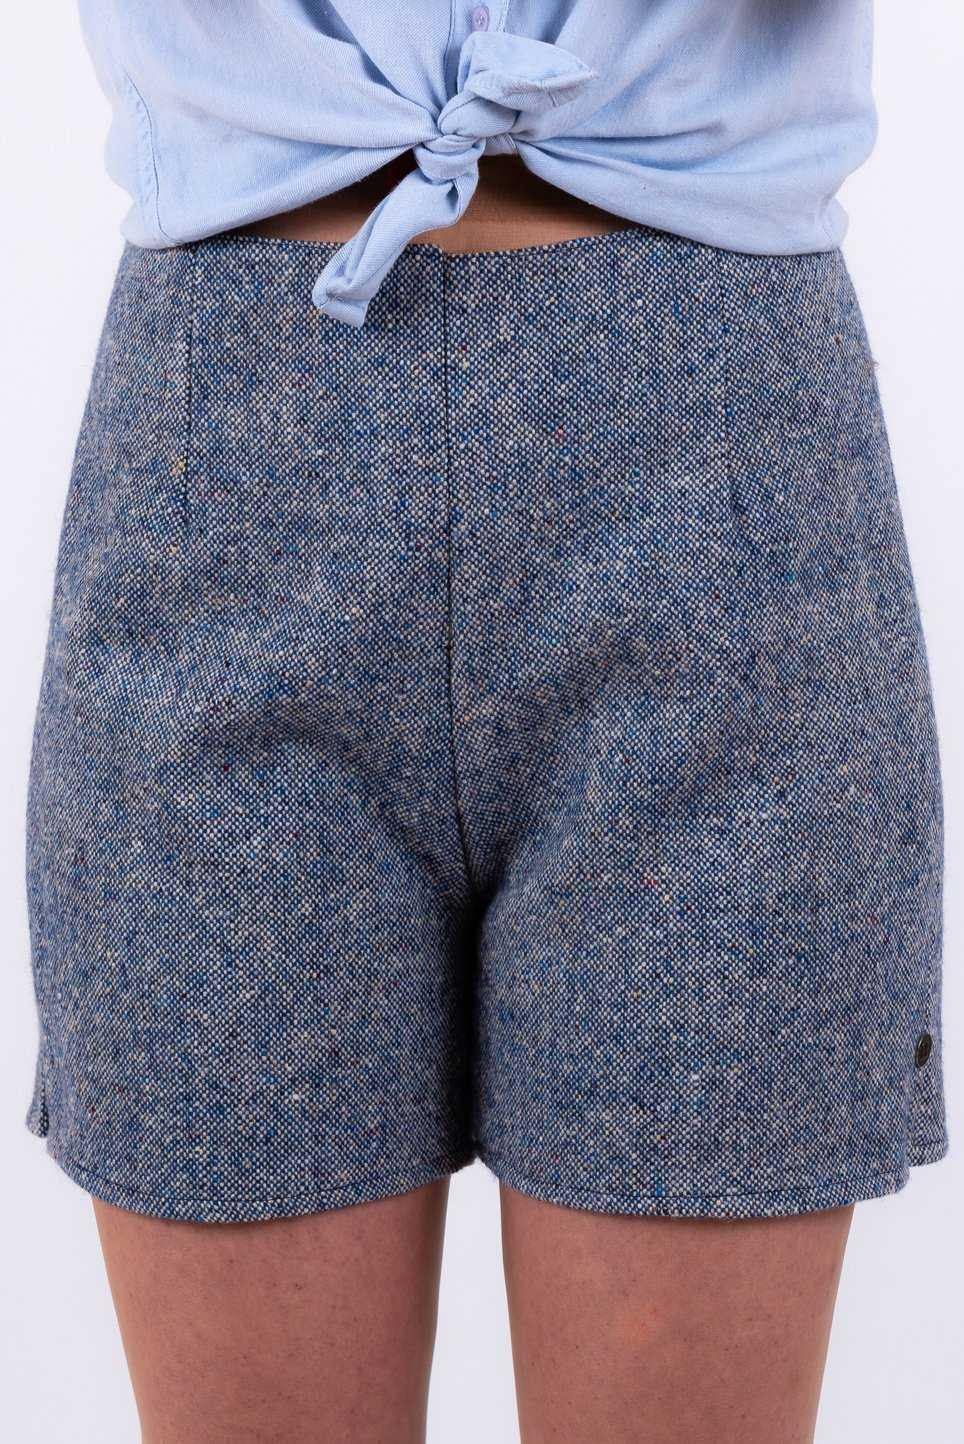 Blue Donegal Tweed Shorts Tweed Shorts Tweed.ie 8